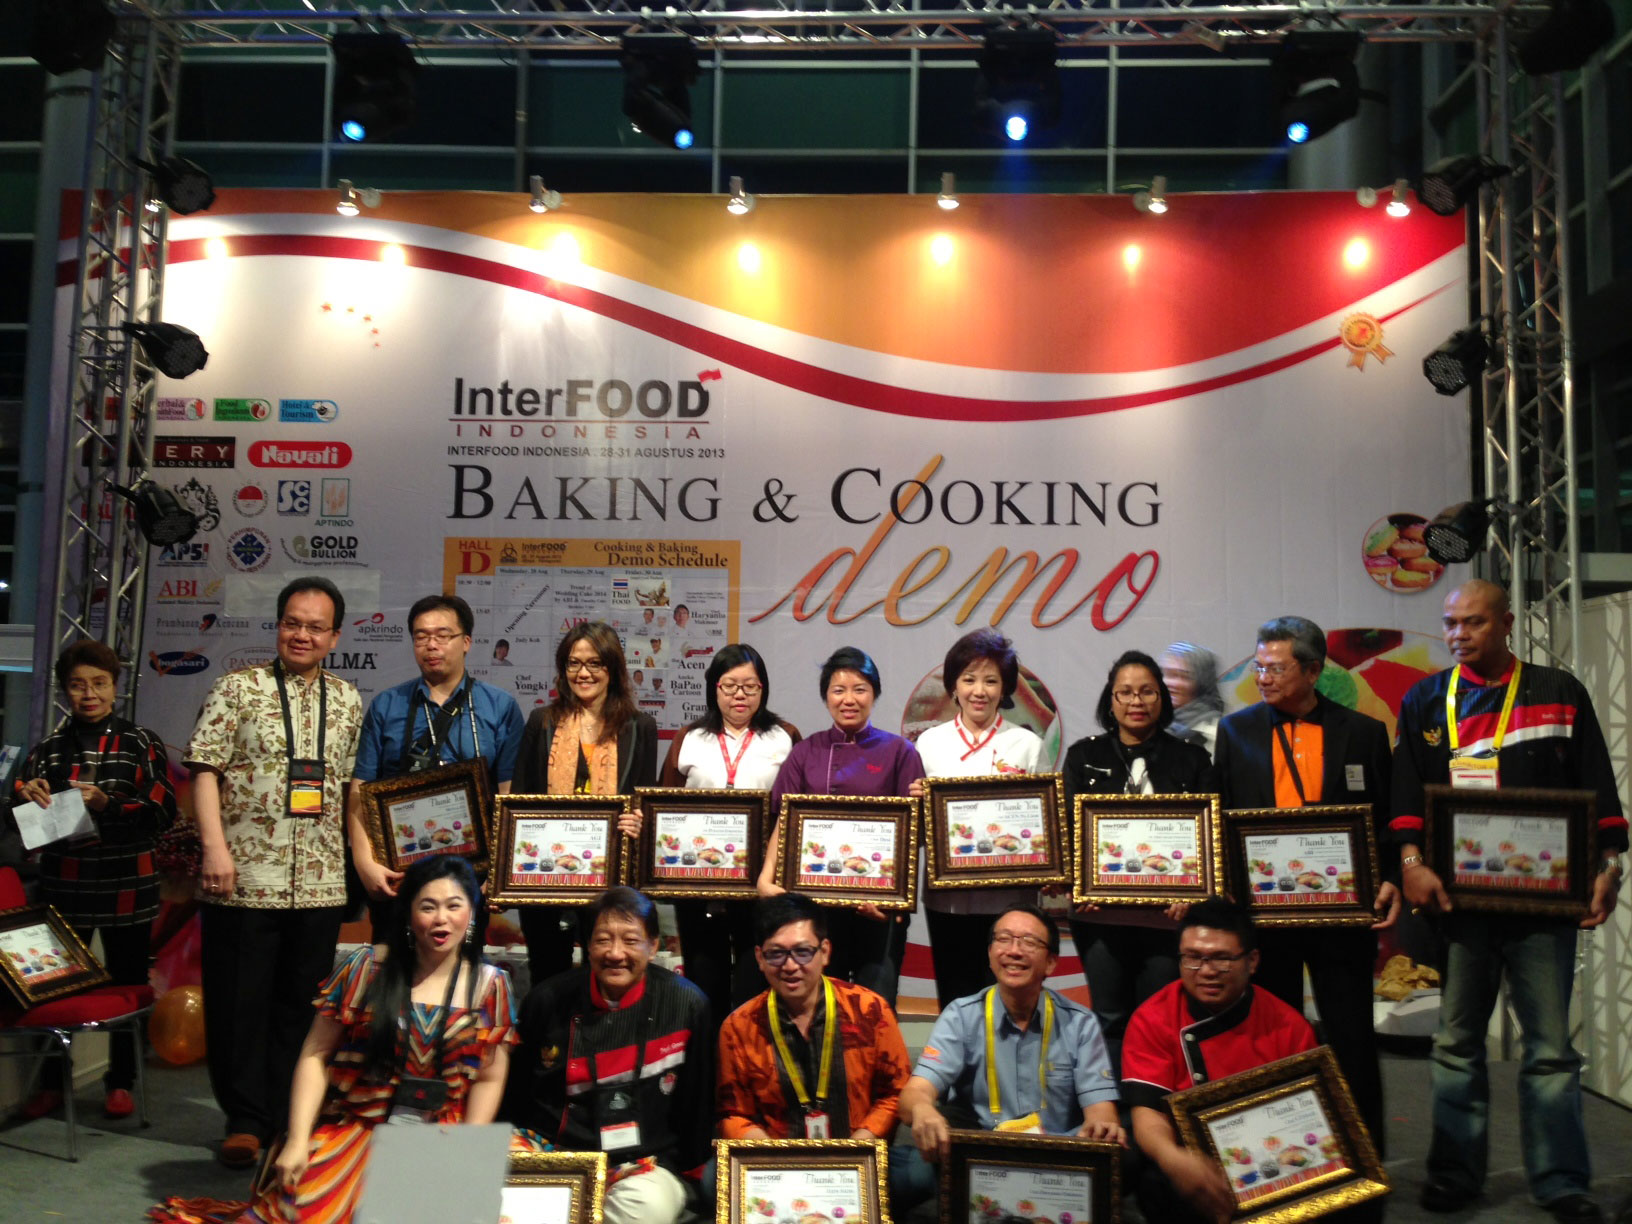 Cooking Demo Interfood 2013